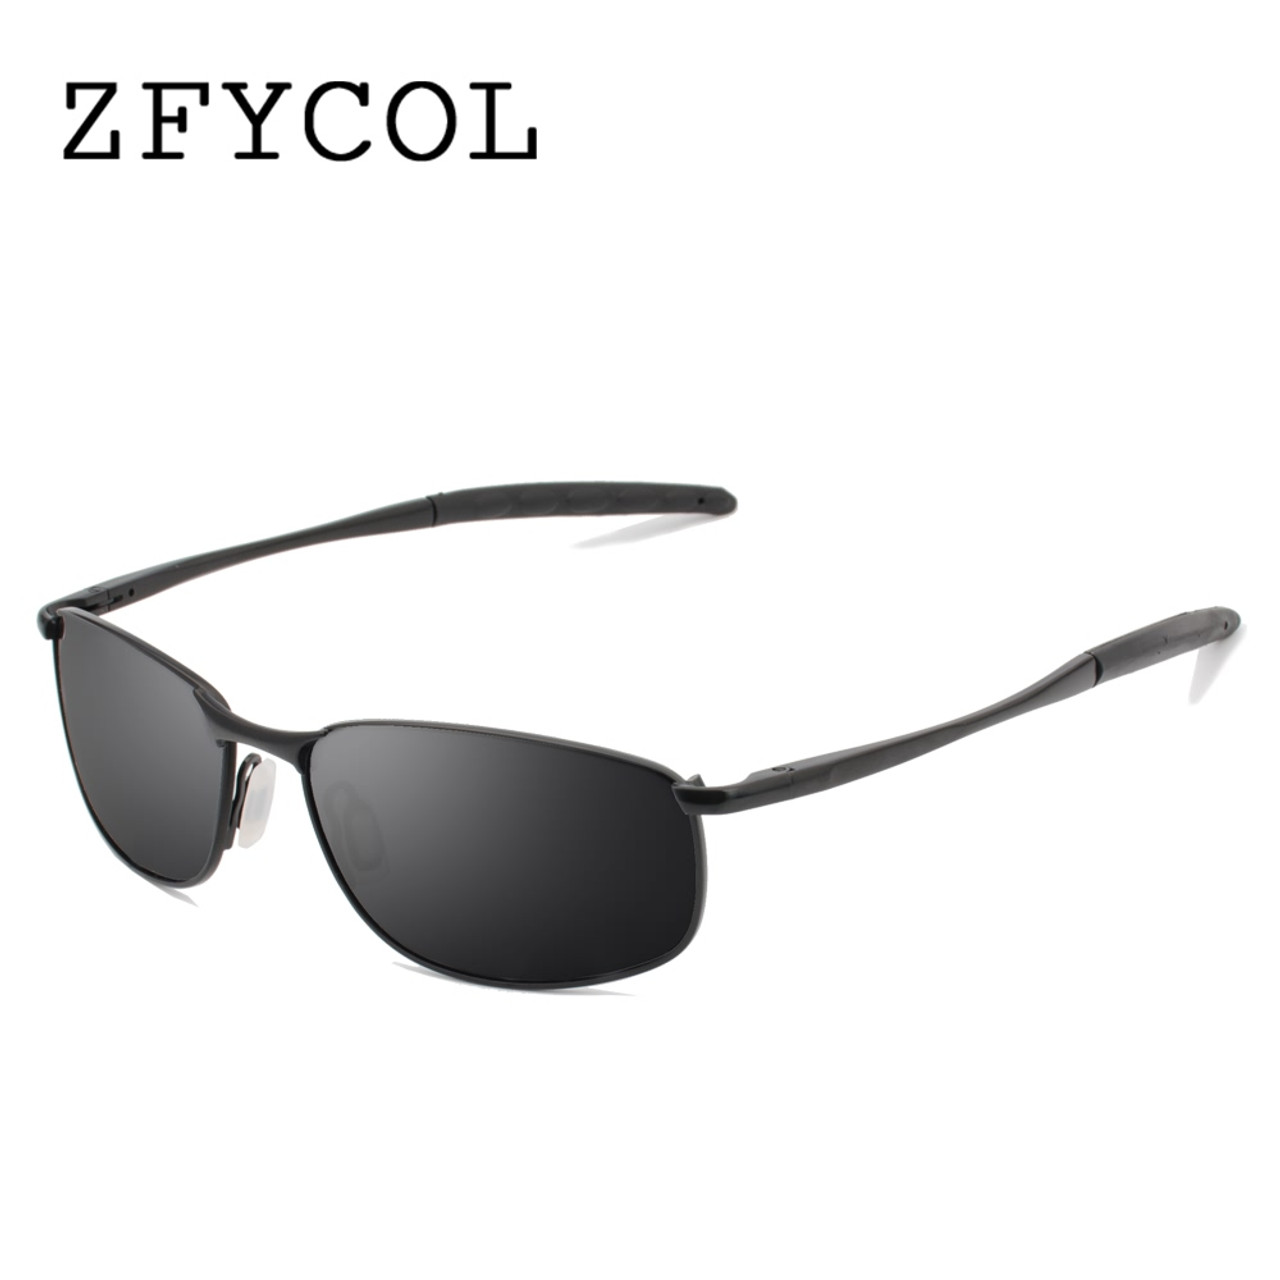 577100f8f6e ZFYCOL 2017 Sunglasses Men Polarized Famous Brand Designer Driving Sun  glasses Male Mirror Lens Gafas Oculos ...